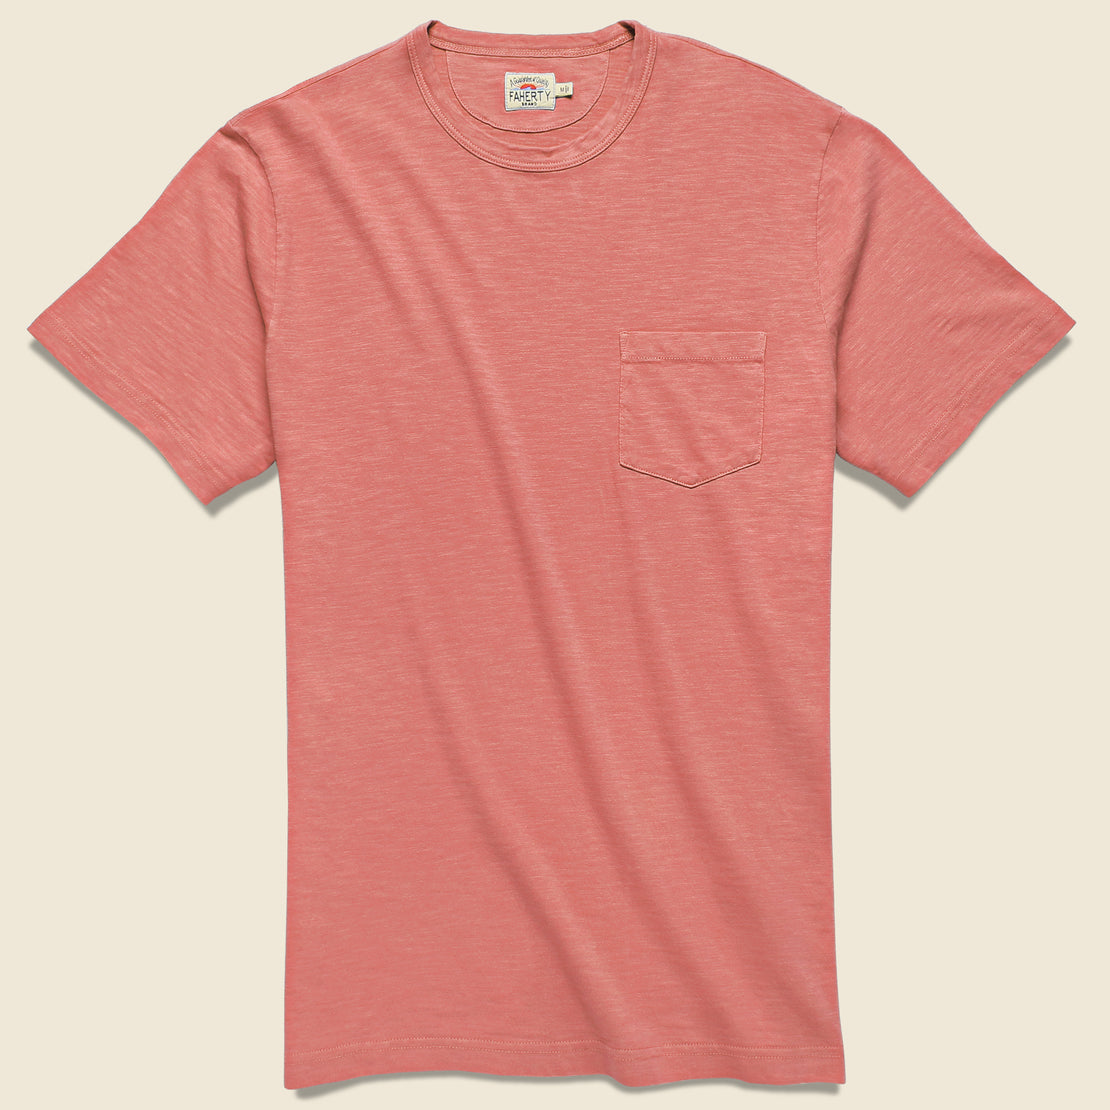 Faherty Garment Dyed Pocket Tee - New Red